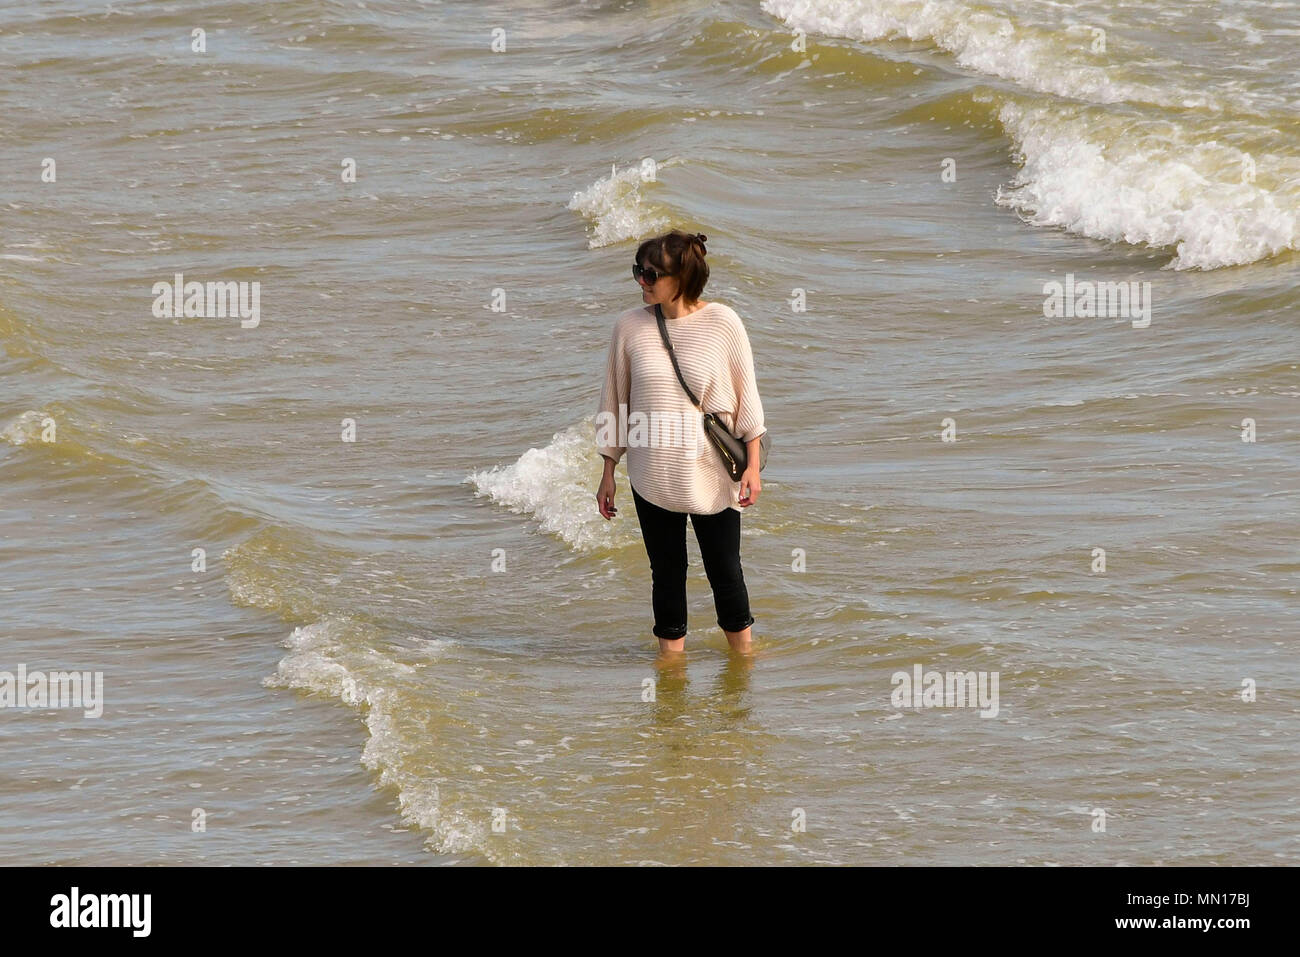 Brighton, West Sussex, UK.  13th May 2018. UK Weather.  A woman standing in the sea at the beach enjoying the warm afternoon sunshine at Brighton in West Sussex.  Picture Credit: Graham Hunt/Alamy Live News - Stock Image